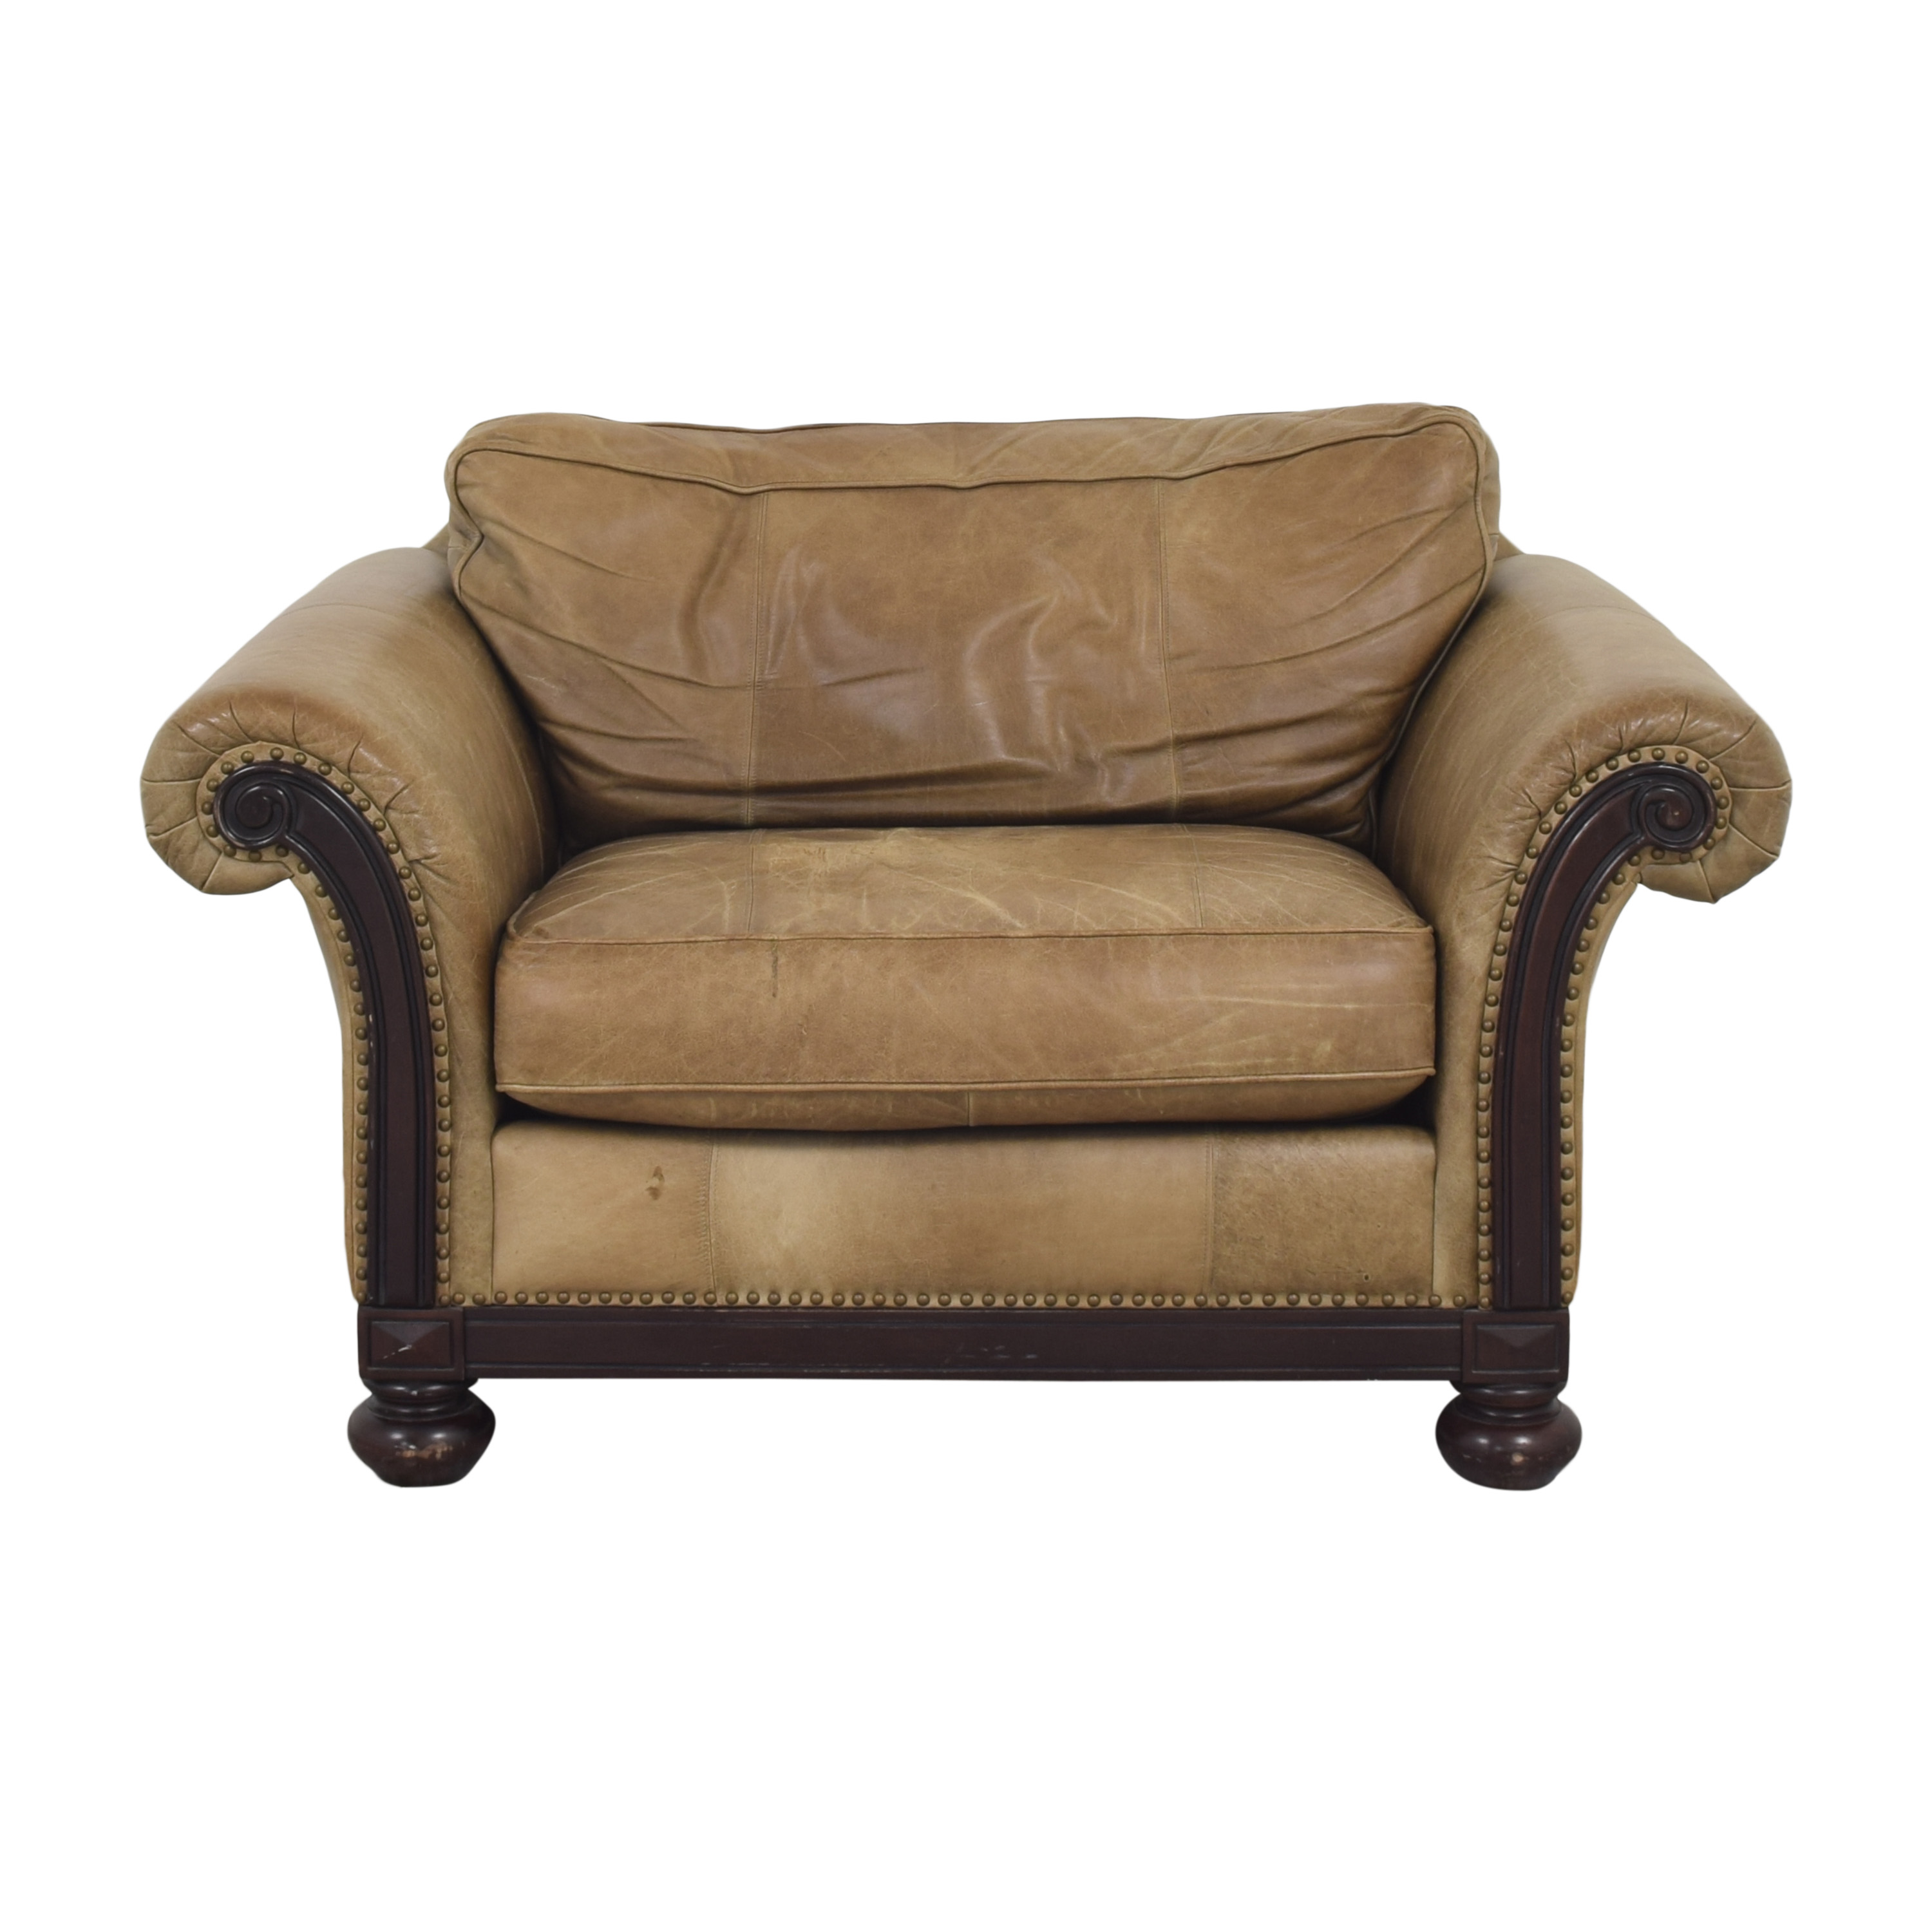 Bernhardt Bernhardt Roll Arm Accent Chair coupon